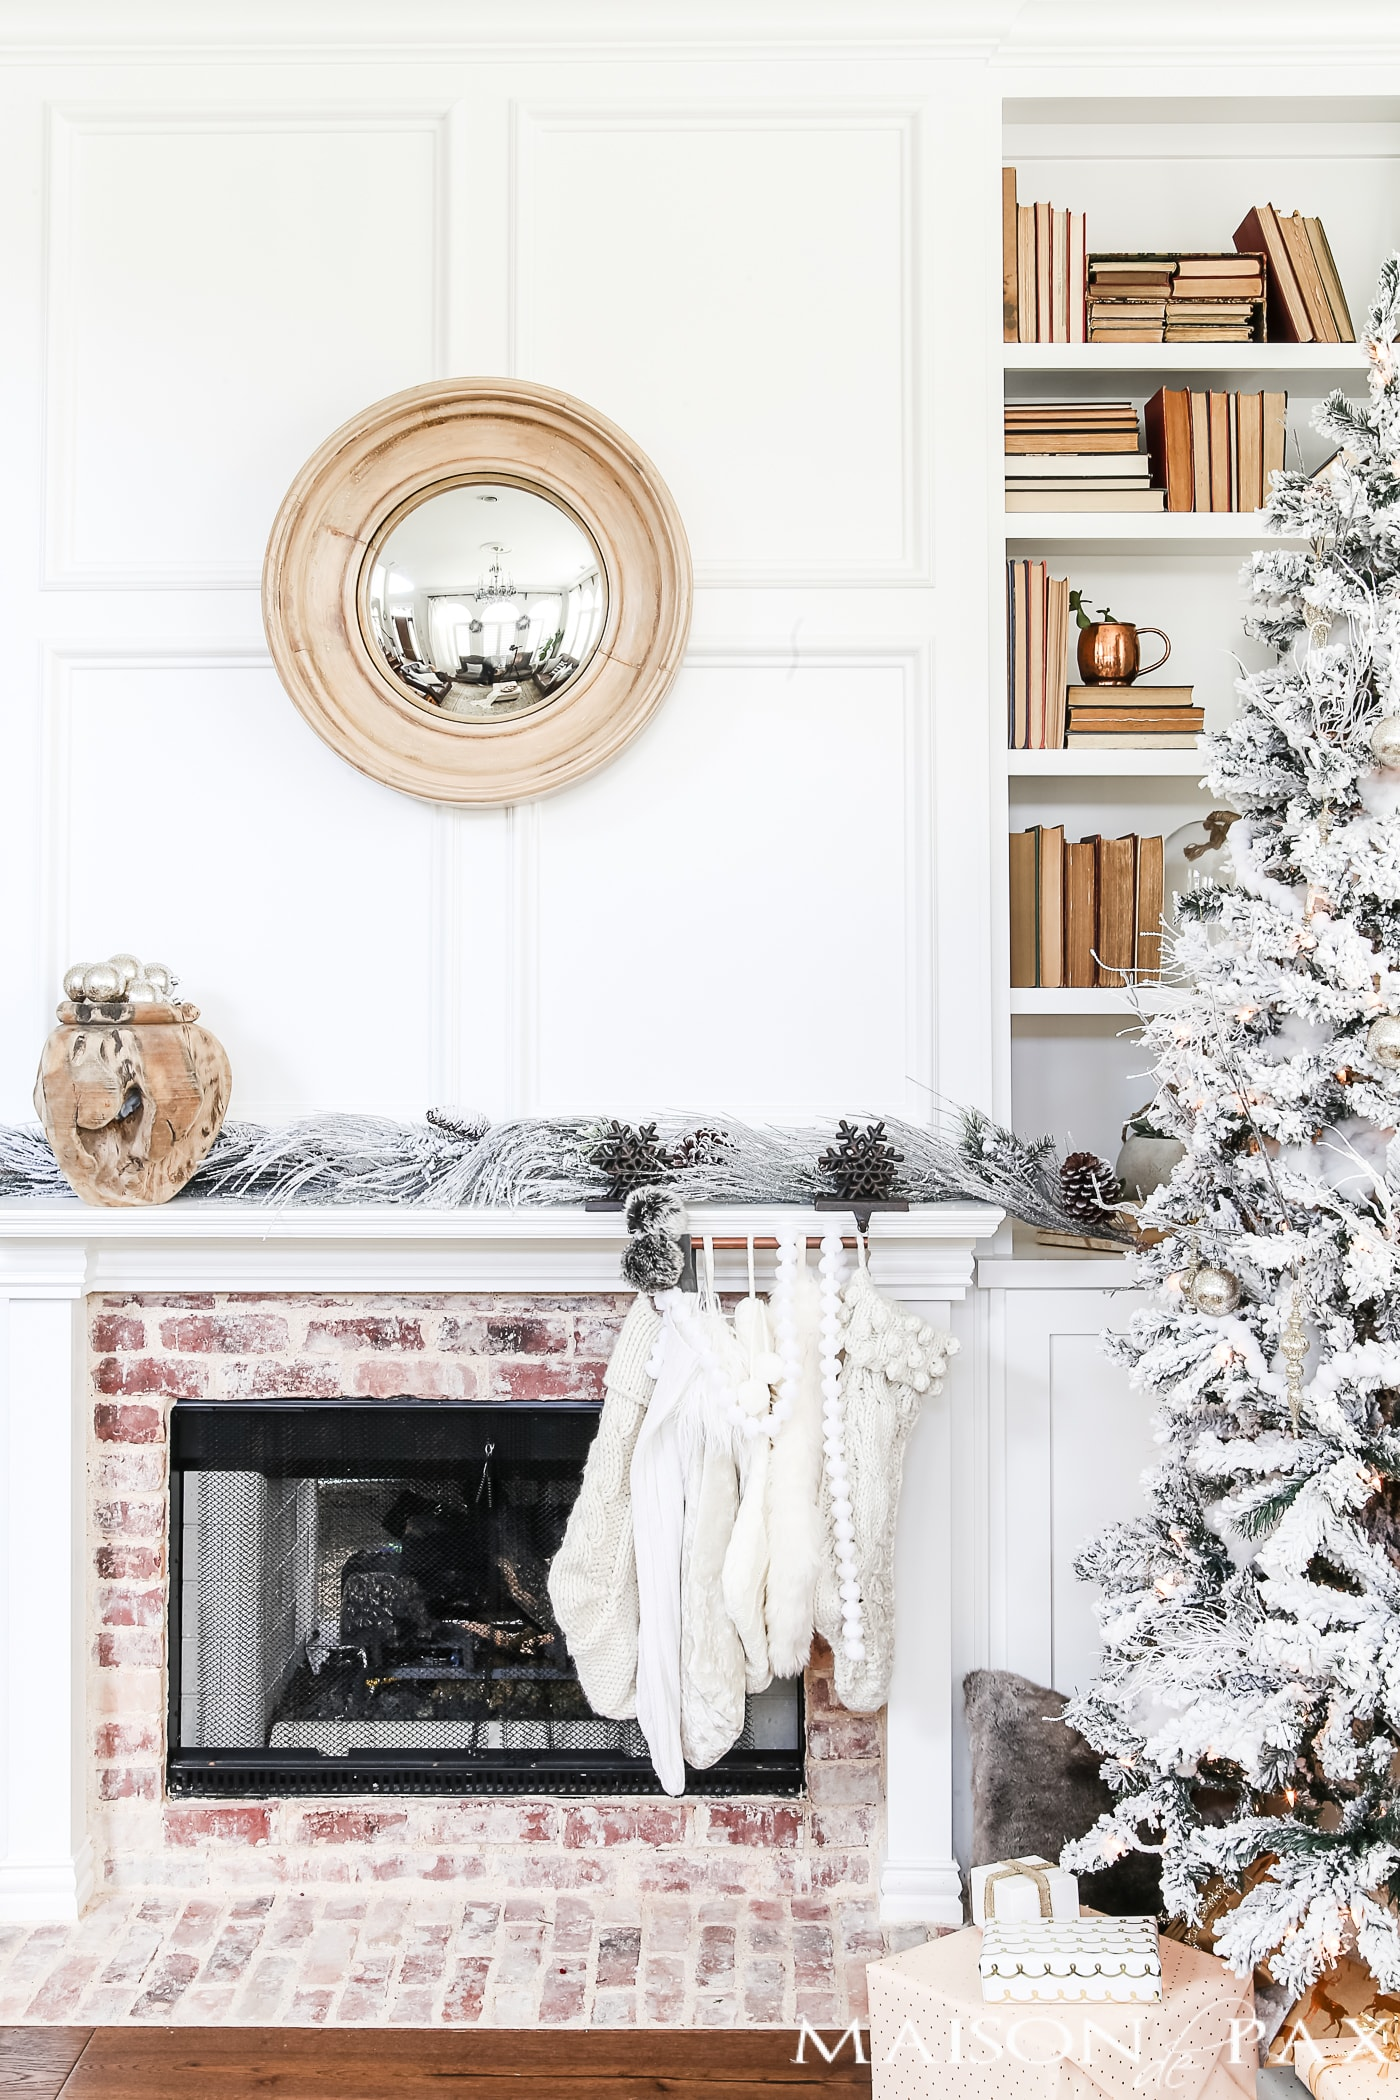 looking for simple elegant holiday decor ideas these 10 tips will help you turn your home into a modern classy winter wonderland - Elegant Christmas Decorating Ideas